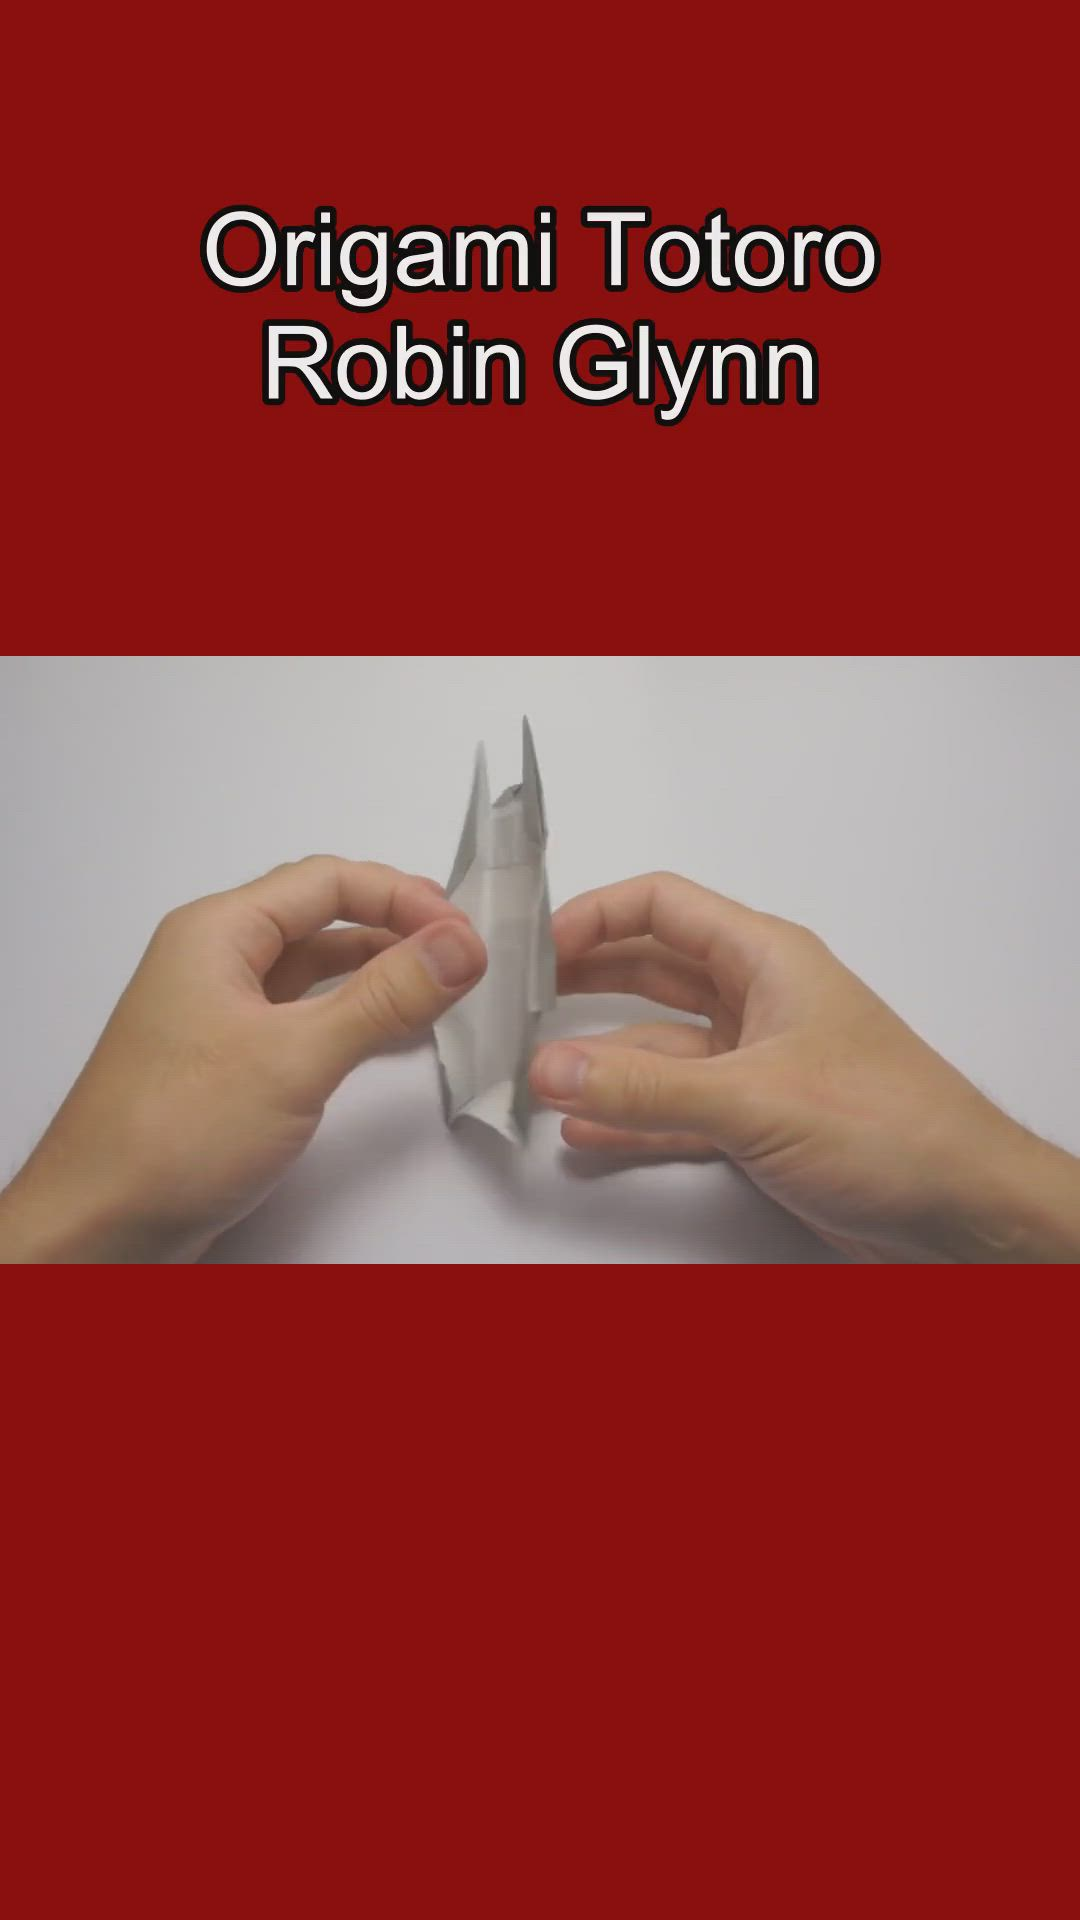 Pin On Best Origami Videos